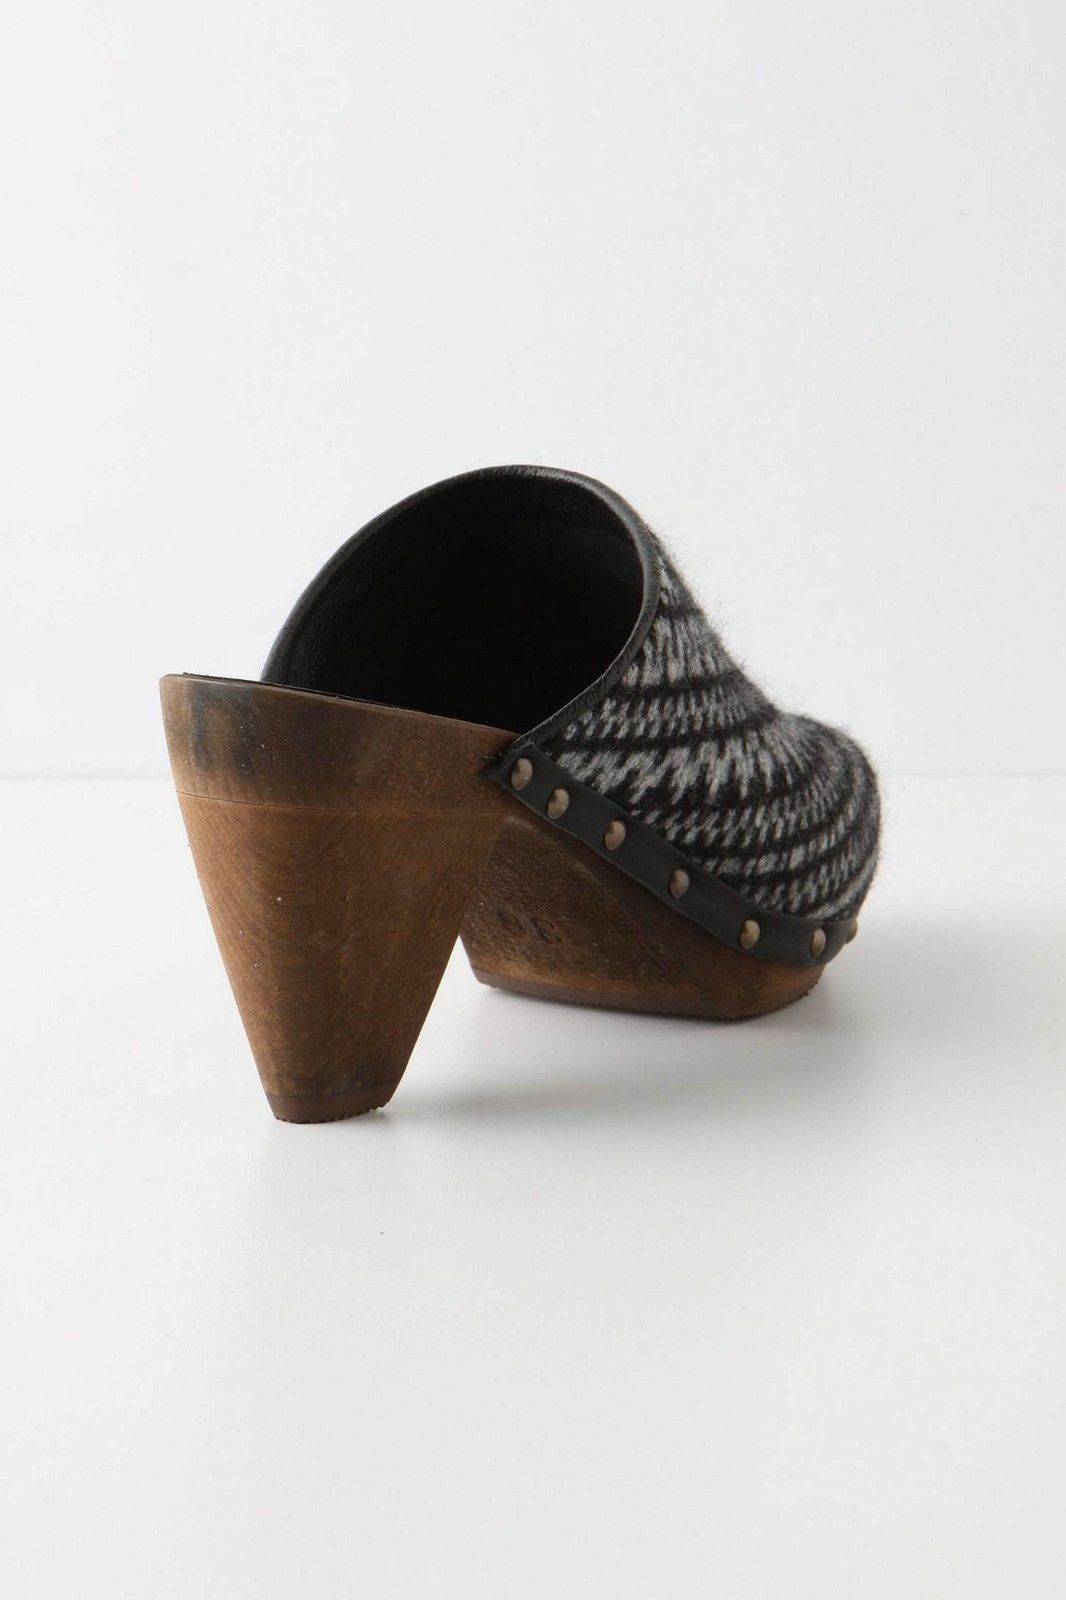 Anthropologie Spinning Heels Wheel Clogs High Heels Spinning Patterned schuhes By Sanita, 38 & 40 4165dd